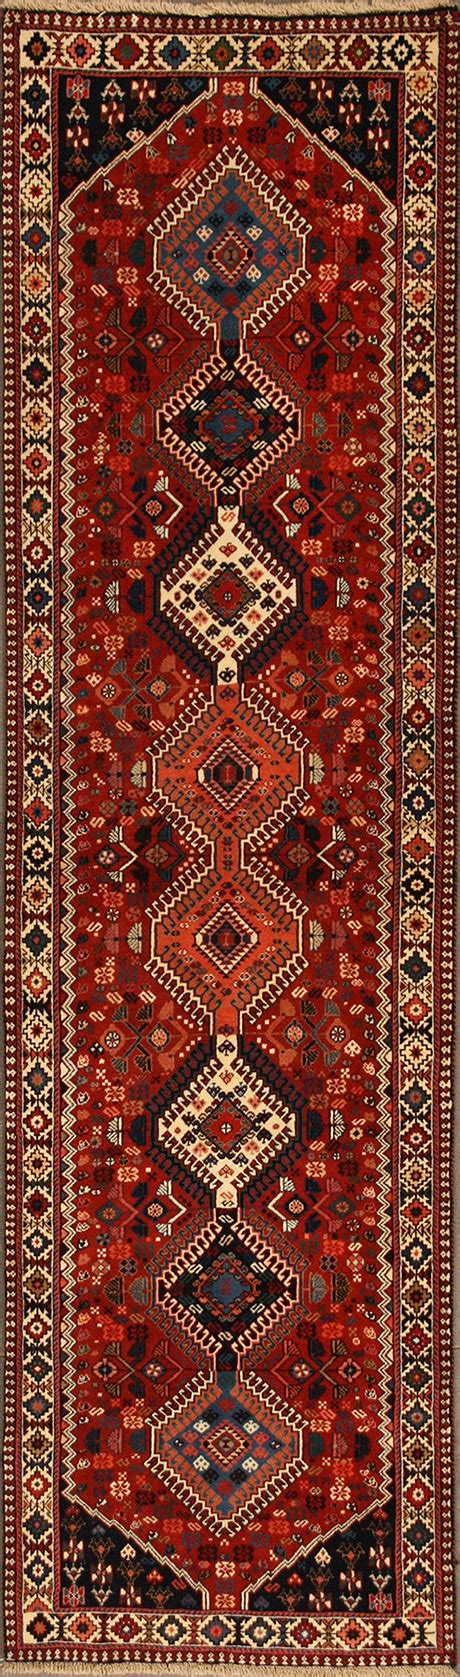 Modern Persian Rug Persian Rugs Hand Knotted Carpets Oriental Rugs Runner Rugs